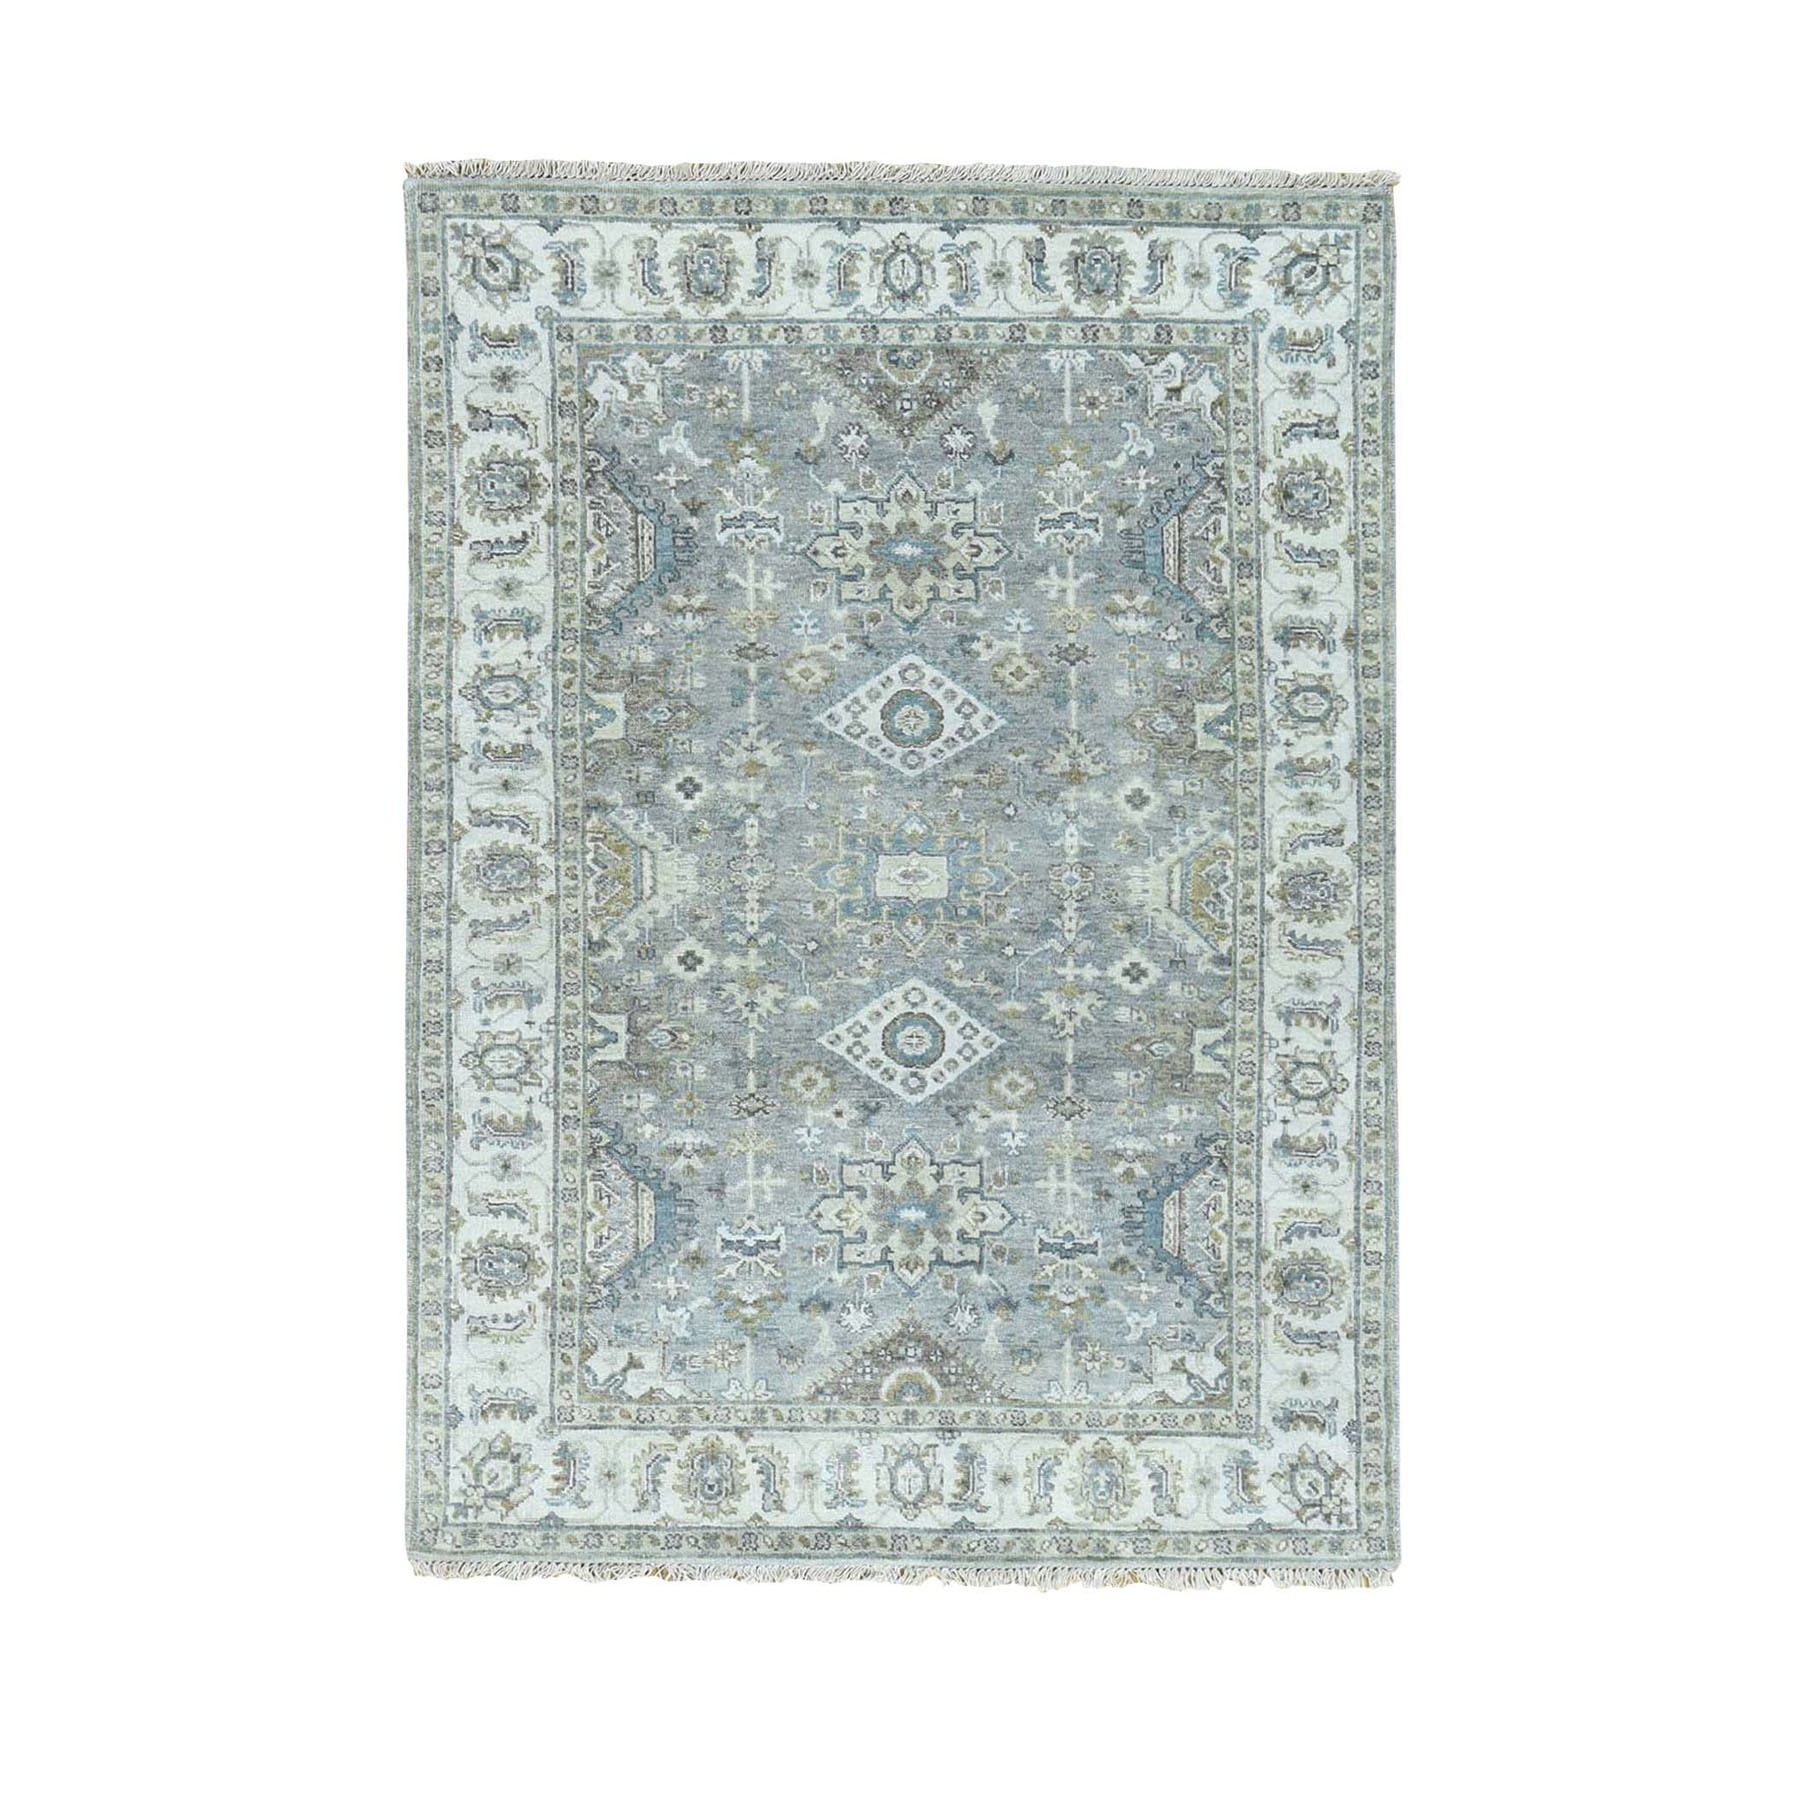 Serapi Heriz and Bakhshayesh Collection Hand Knotted Grey Rug No: 0196464